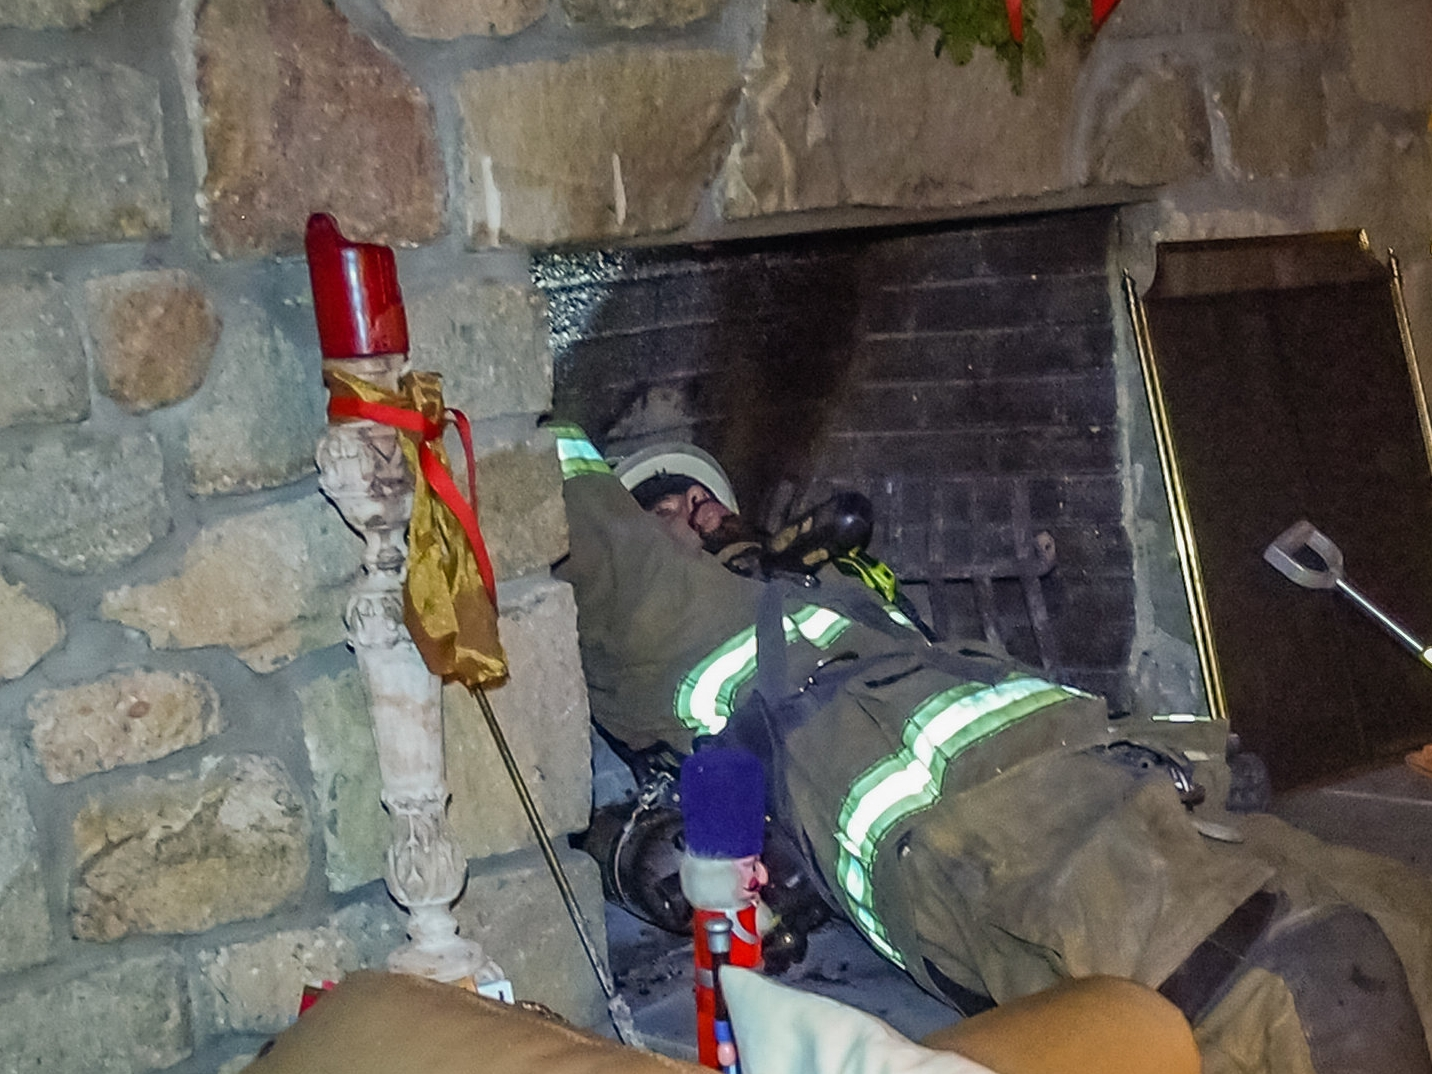 2017.12.21 at 6:00 PM Midway Volunteer Fire Company responded to a chimney fire at a residence on Honey Hollow Road in Solebury Township.There was no apparent structural damage.Neither the residents or first responders were injured at the scene.